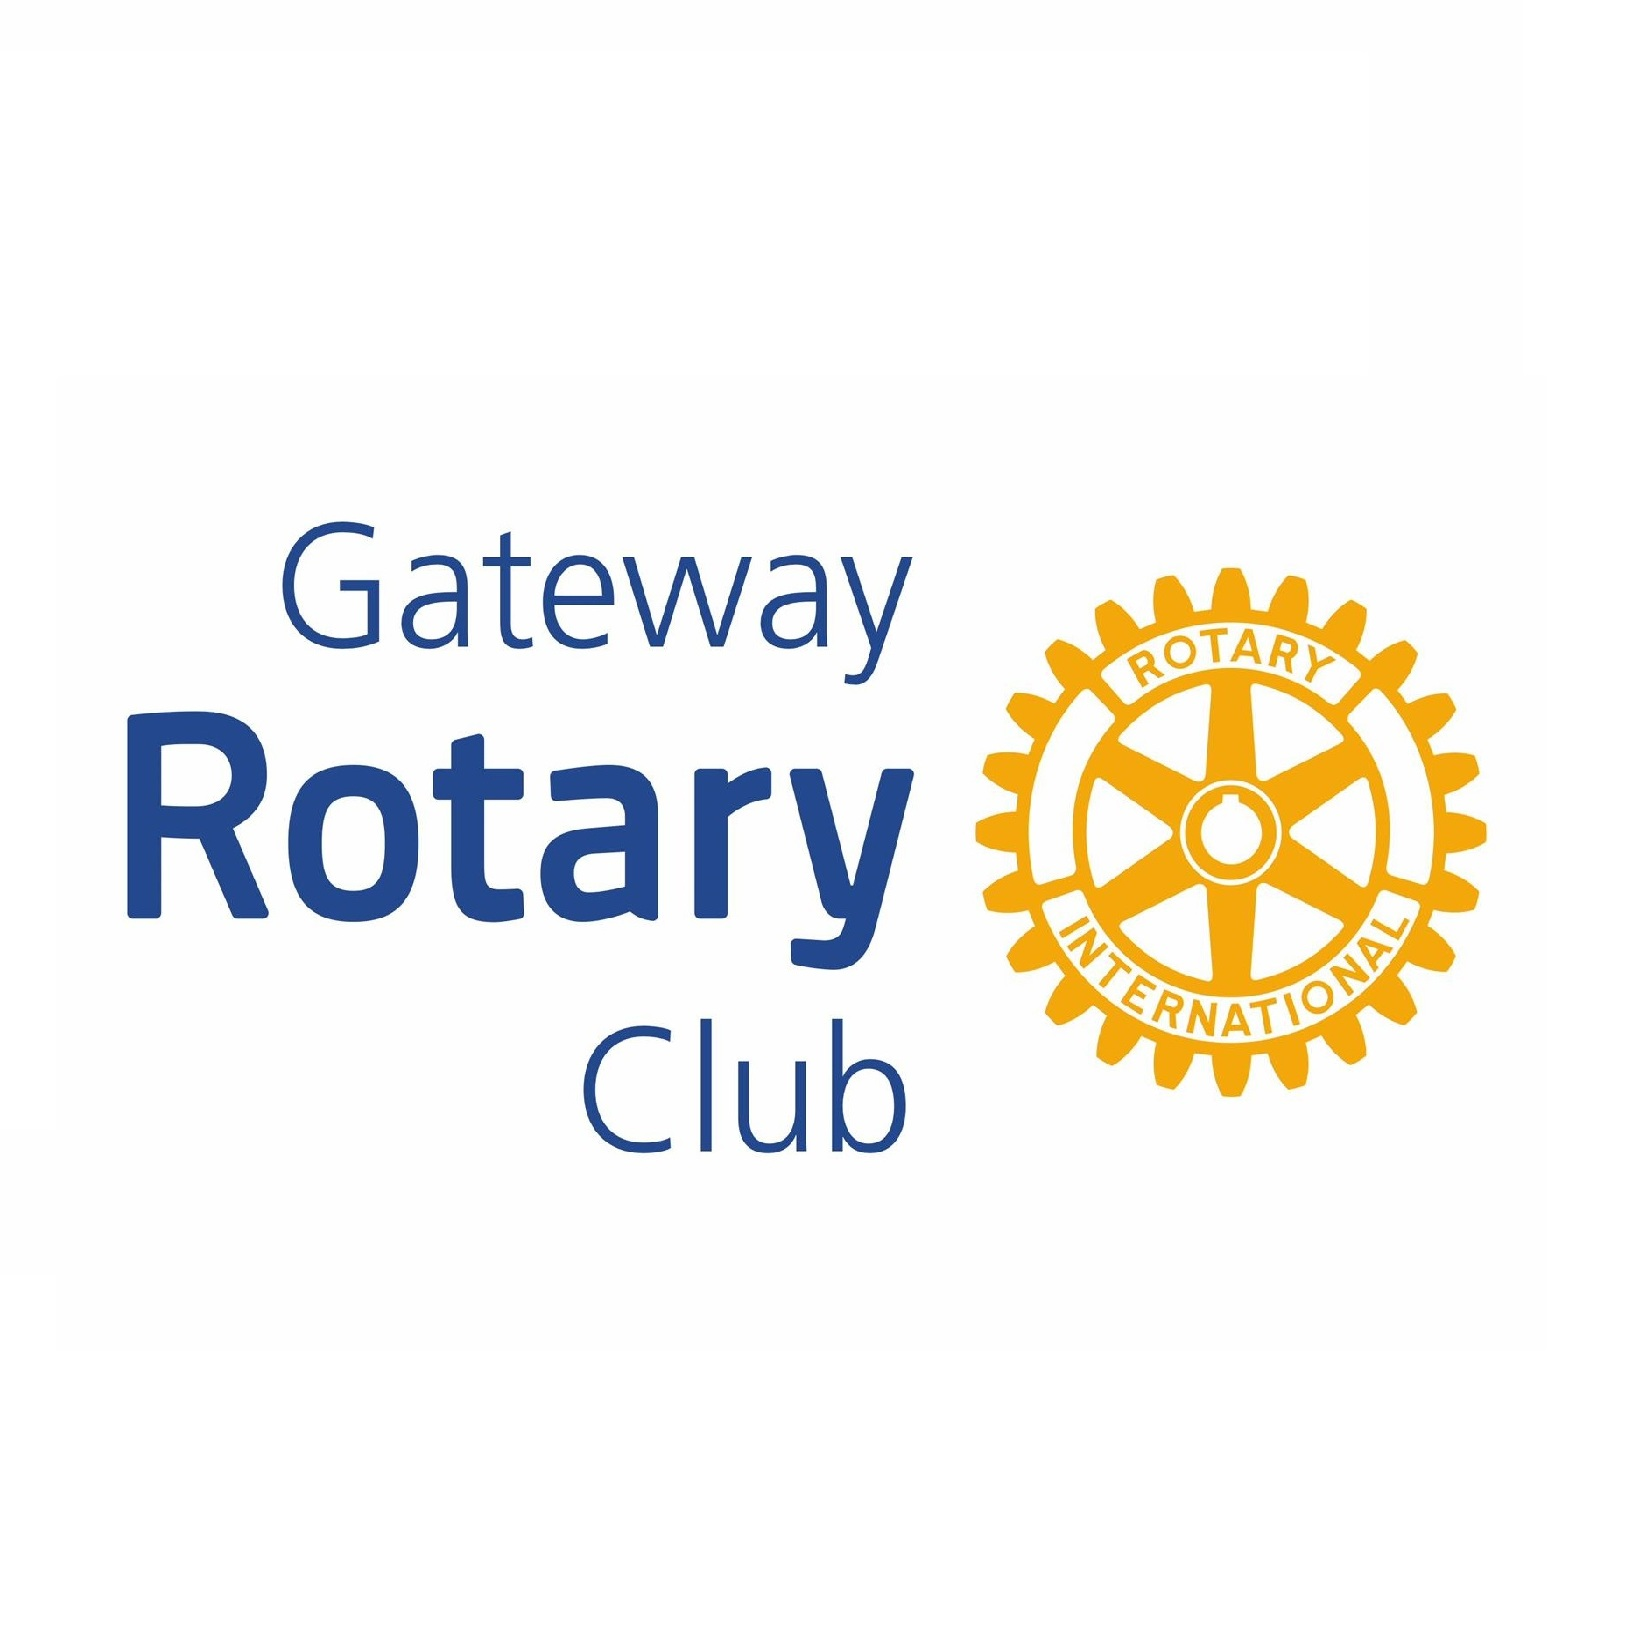 Gateway Rotary Club of Thurston County